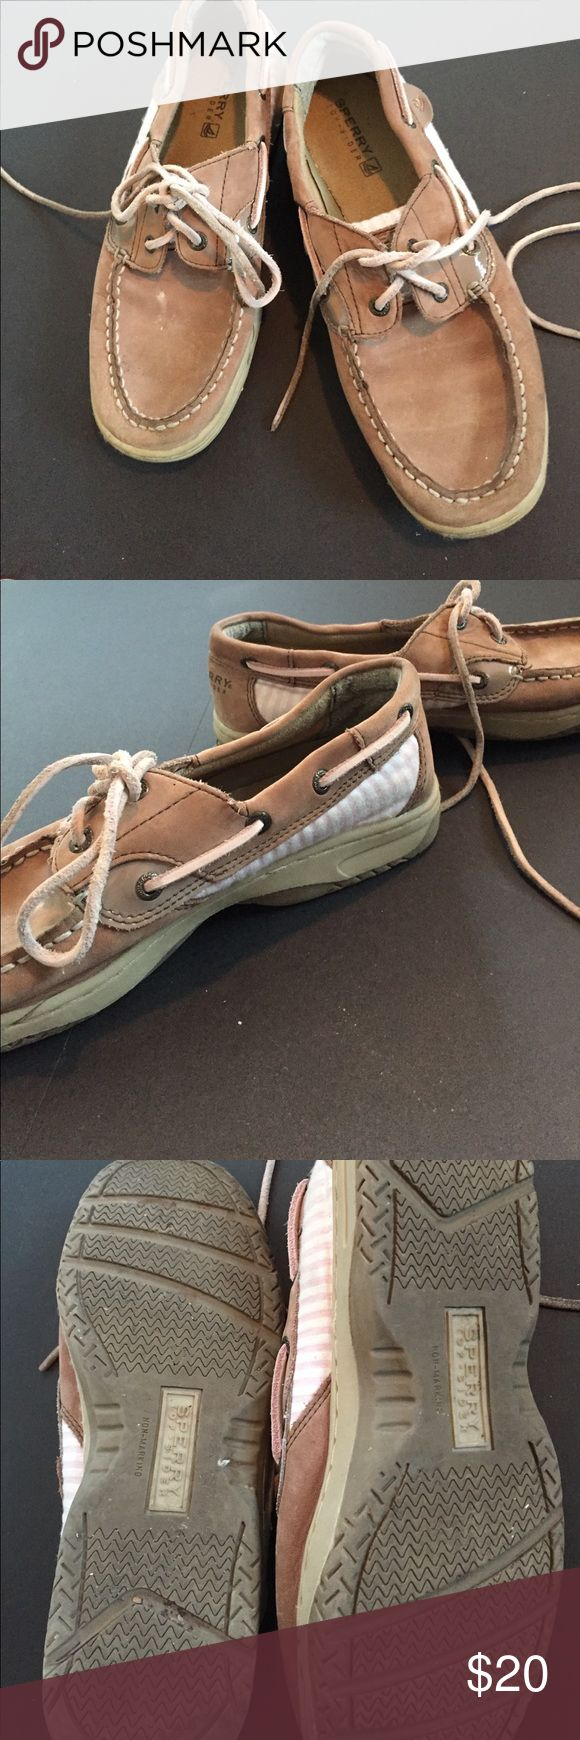 Pink and White Stripped Sperry Top Sider Shoes Good used condition. Some markings in right shoe (pictured). Sole is in great condition. Men's 4.5. Women's 7 Sperry Top-Sider Shoes Flats & Loafers